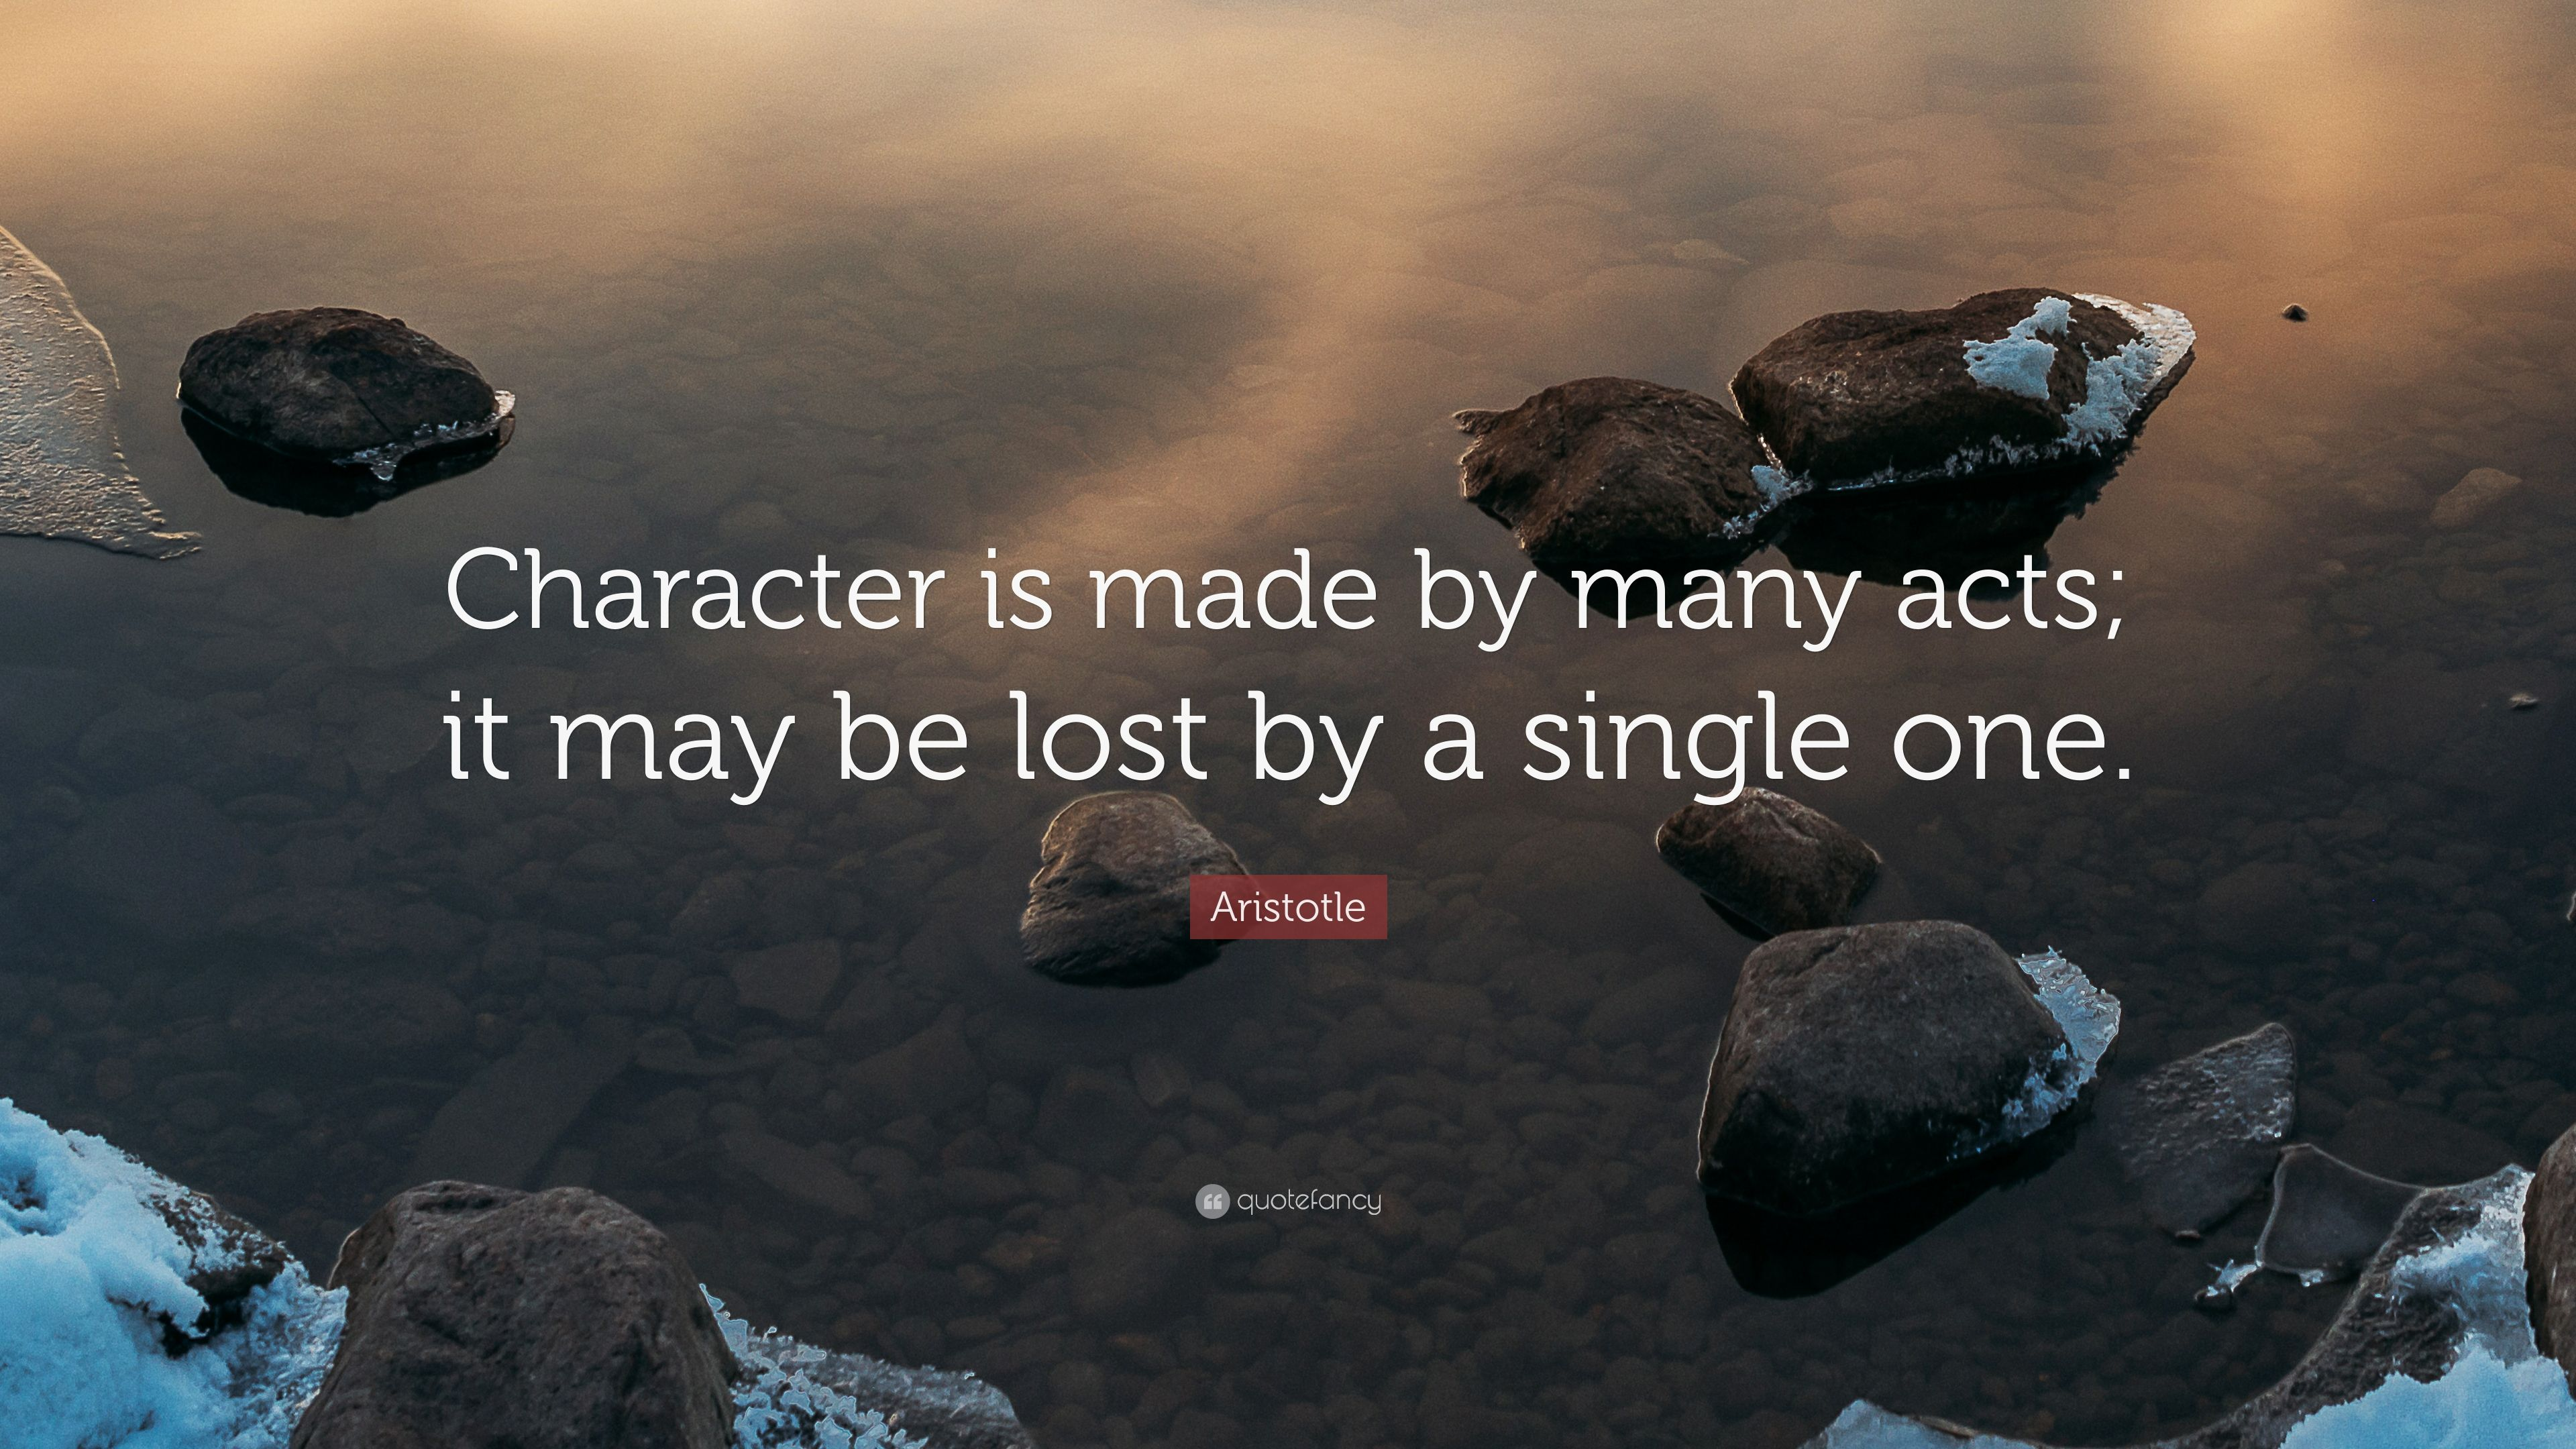 Image result for character is made by many acts it may be lost by a single one Aristotle